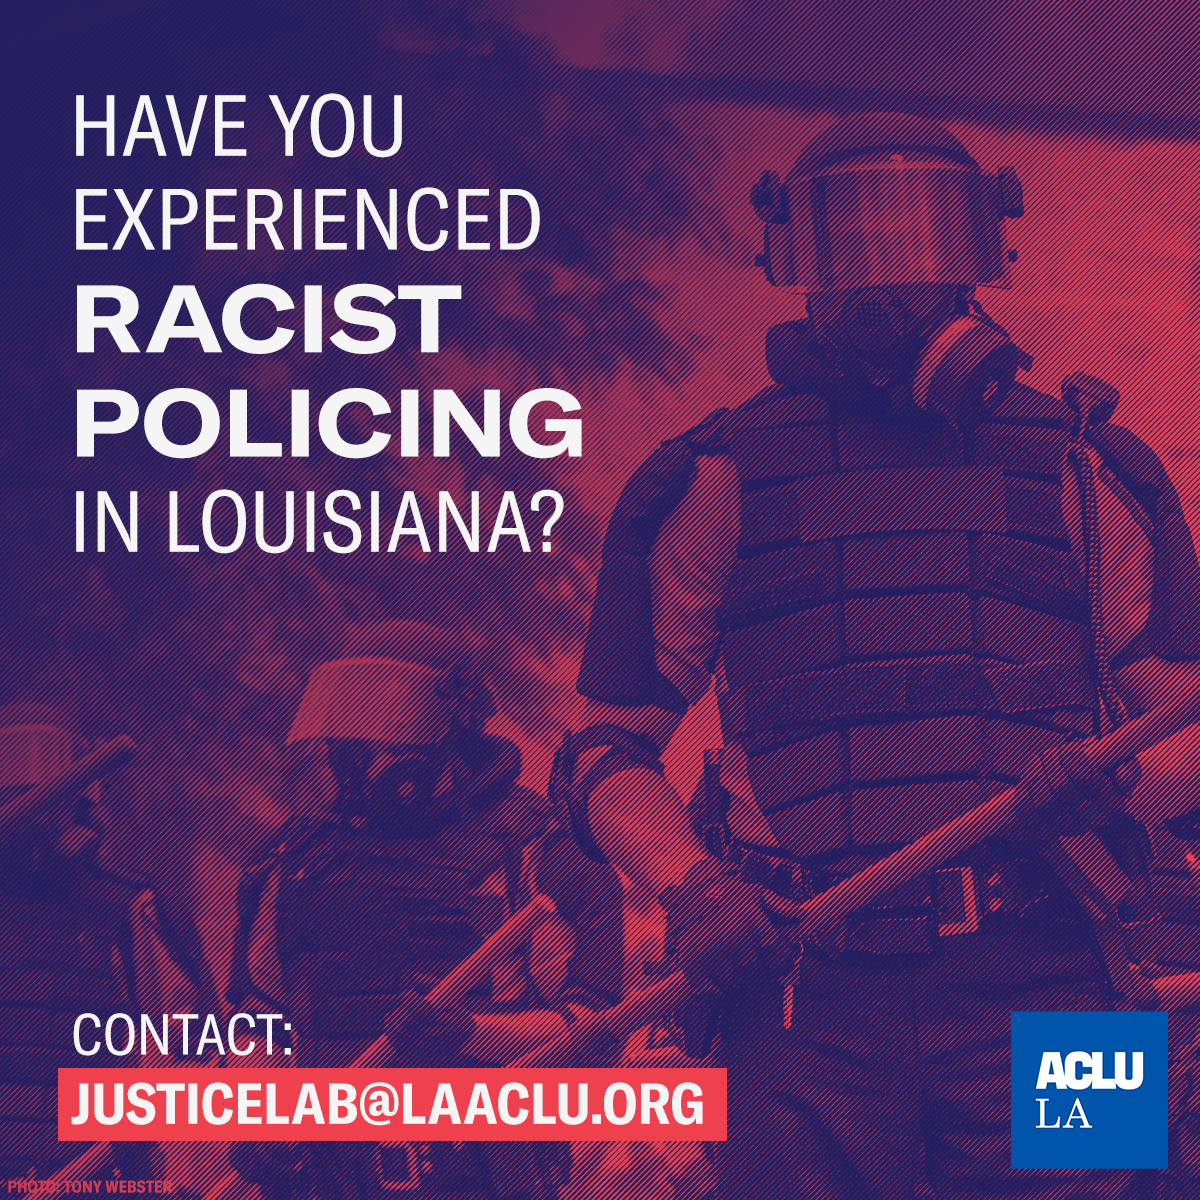 🚨 We're seeking potential plaintiffs to challenge racist, unconstitutional policing practices in Louisiana. If you've had a negative, race-based interaction with the police on or after May 1, 2020, contact Justice Lab at: justicelab@laaclu.org or (504) 522-0628